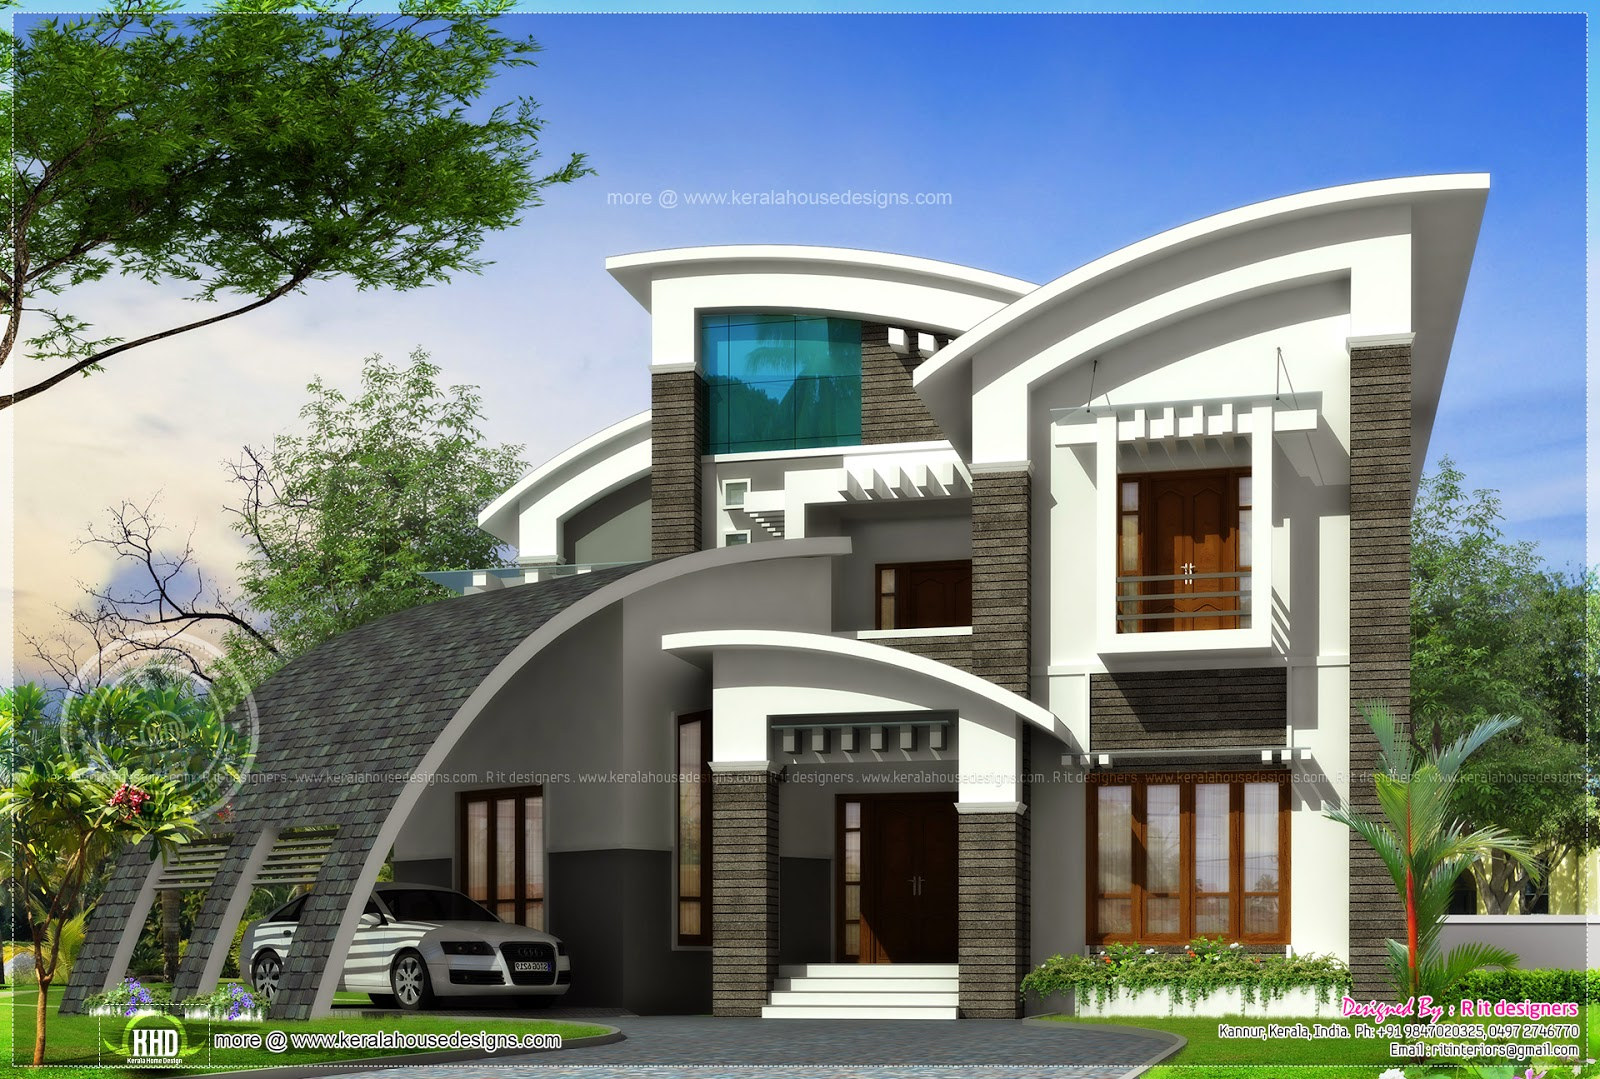 Super luxury ultra modern house design kerala home for New house plans